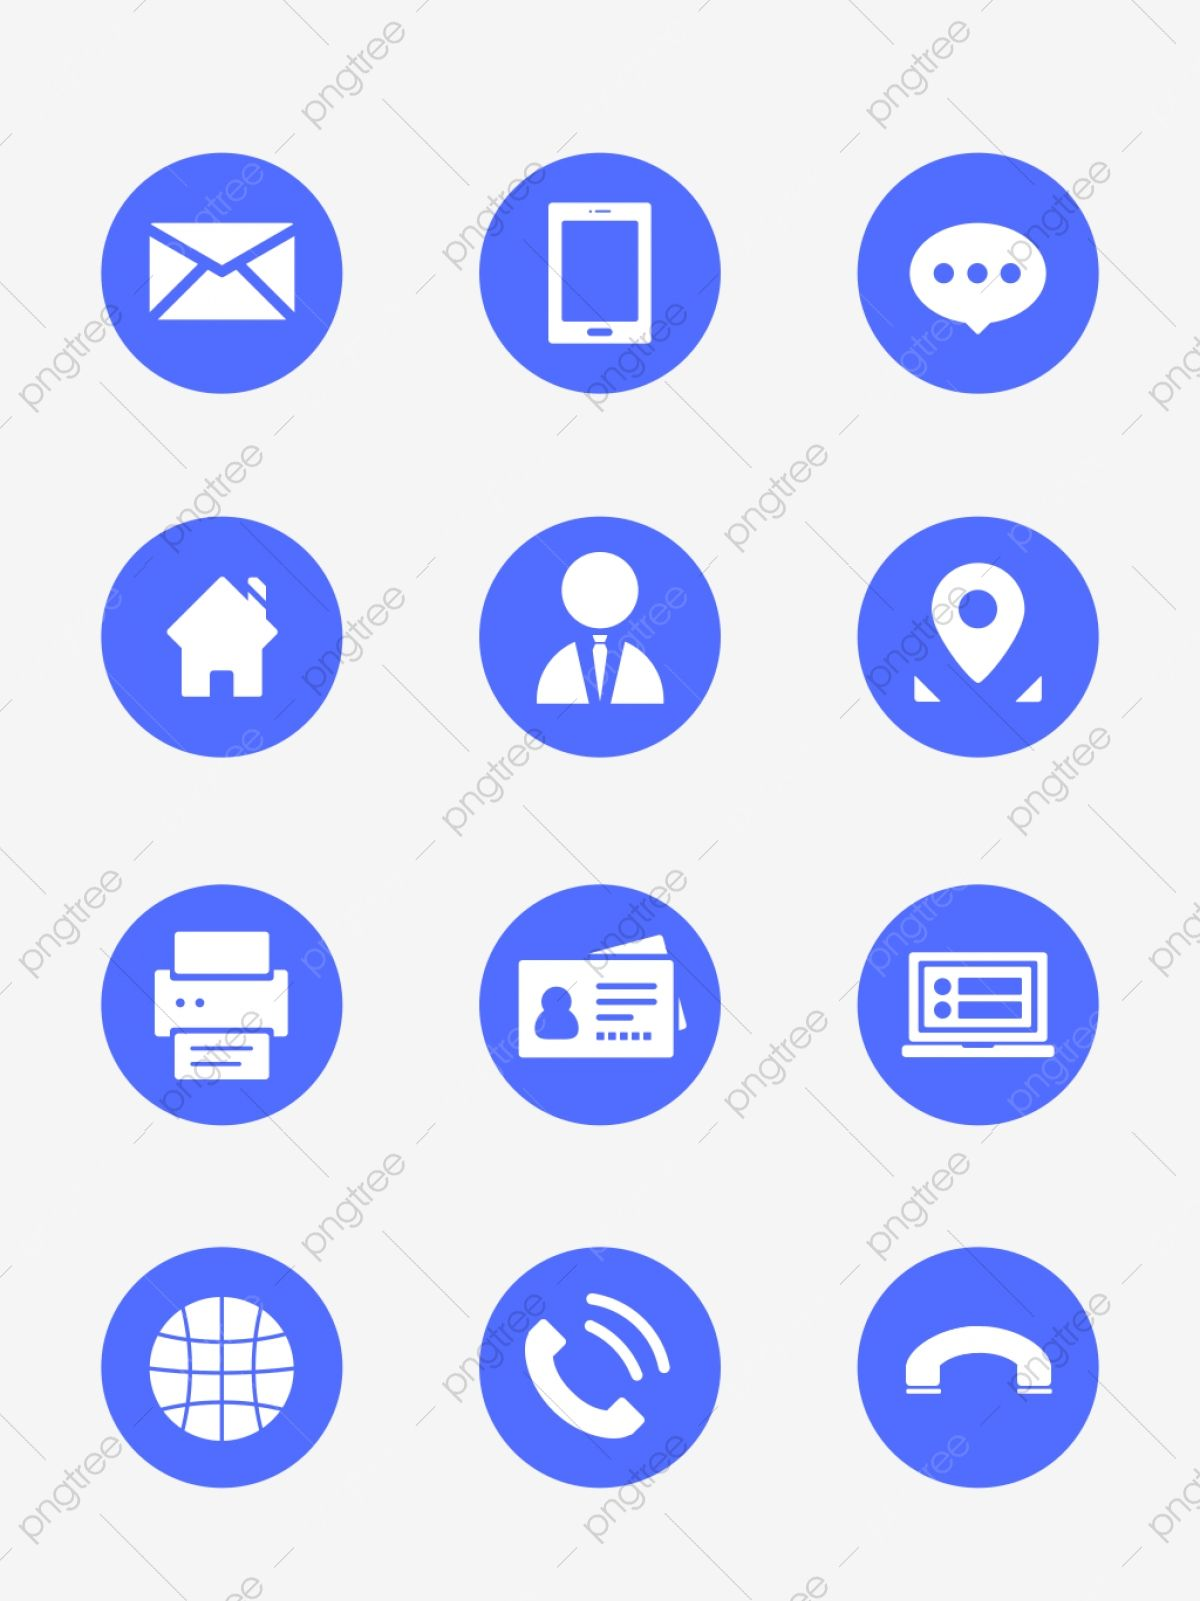 Round Contact Icon Vector Material Picture, Small Icon